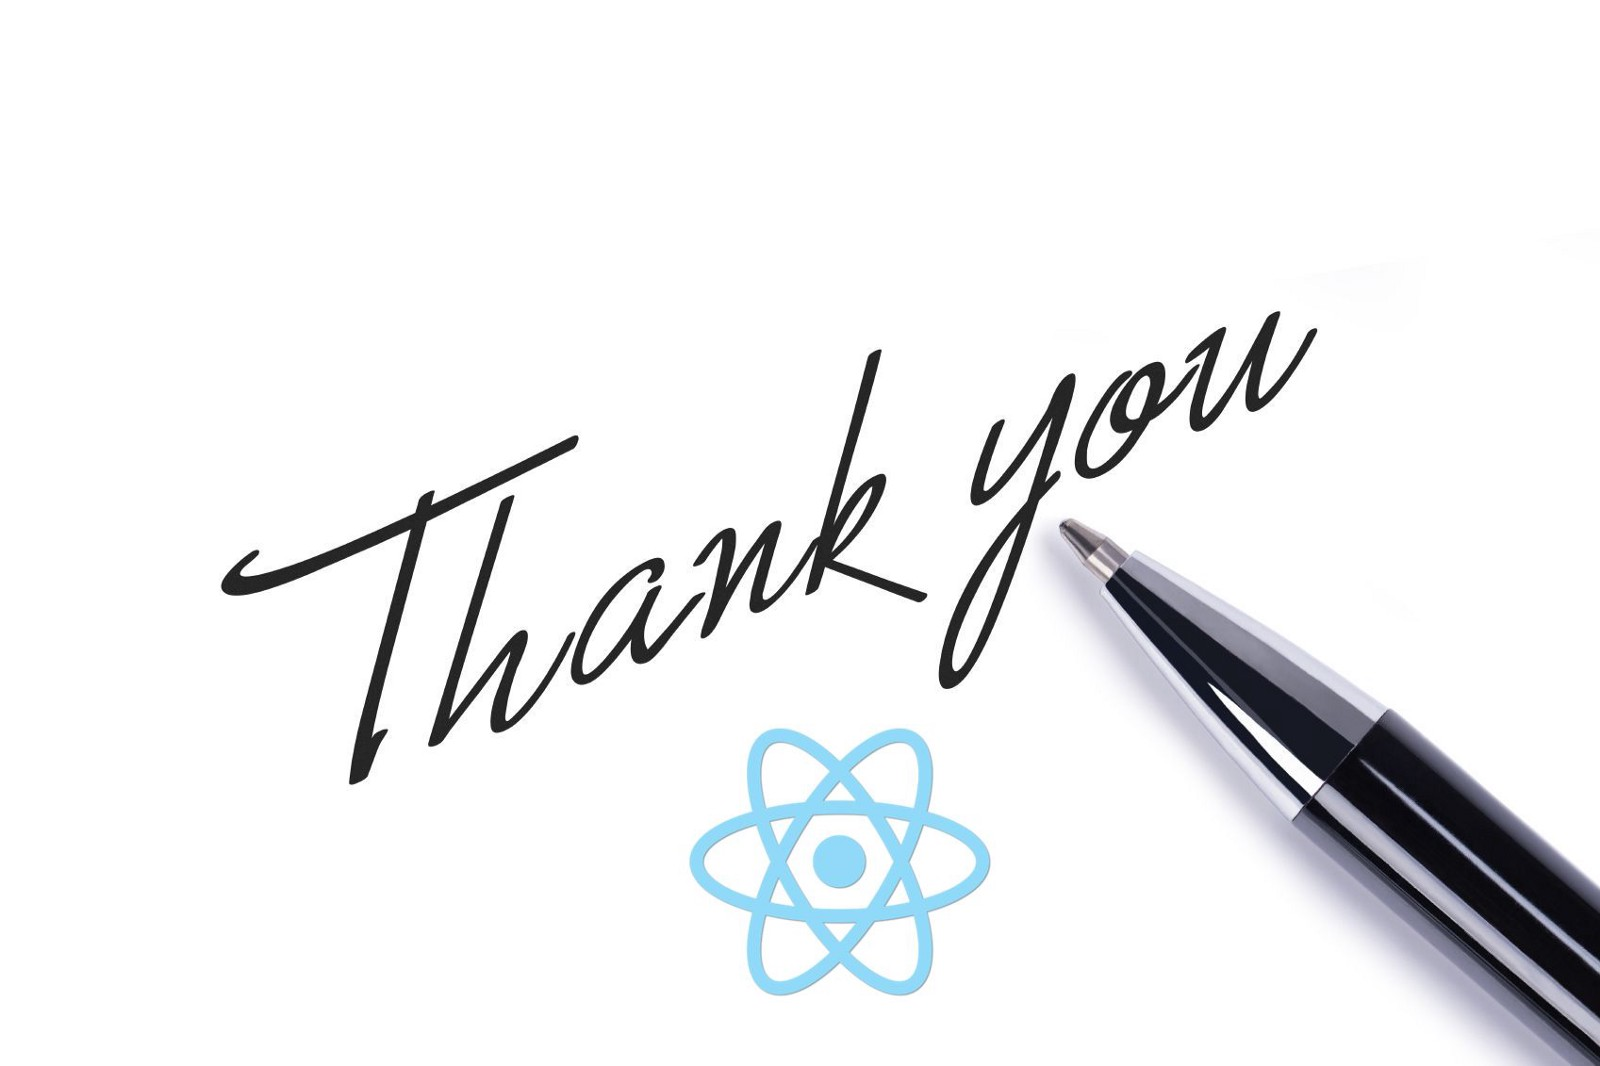 dear react a thank you letter freecodecamp